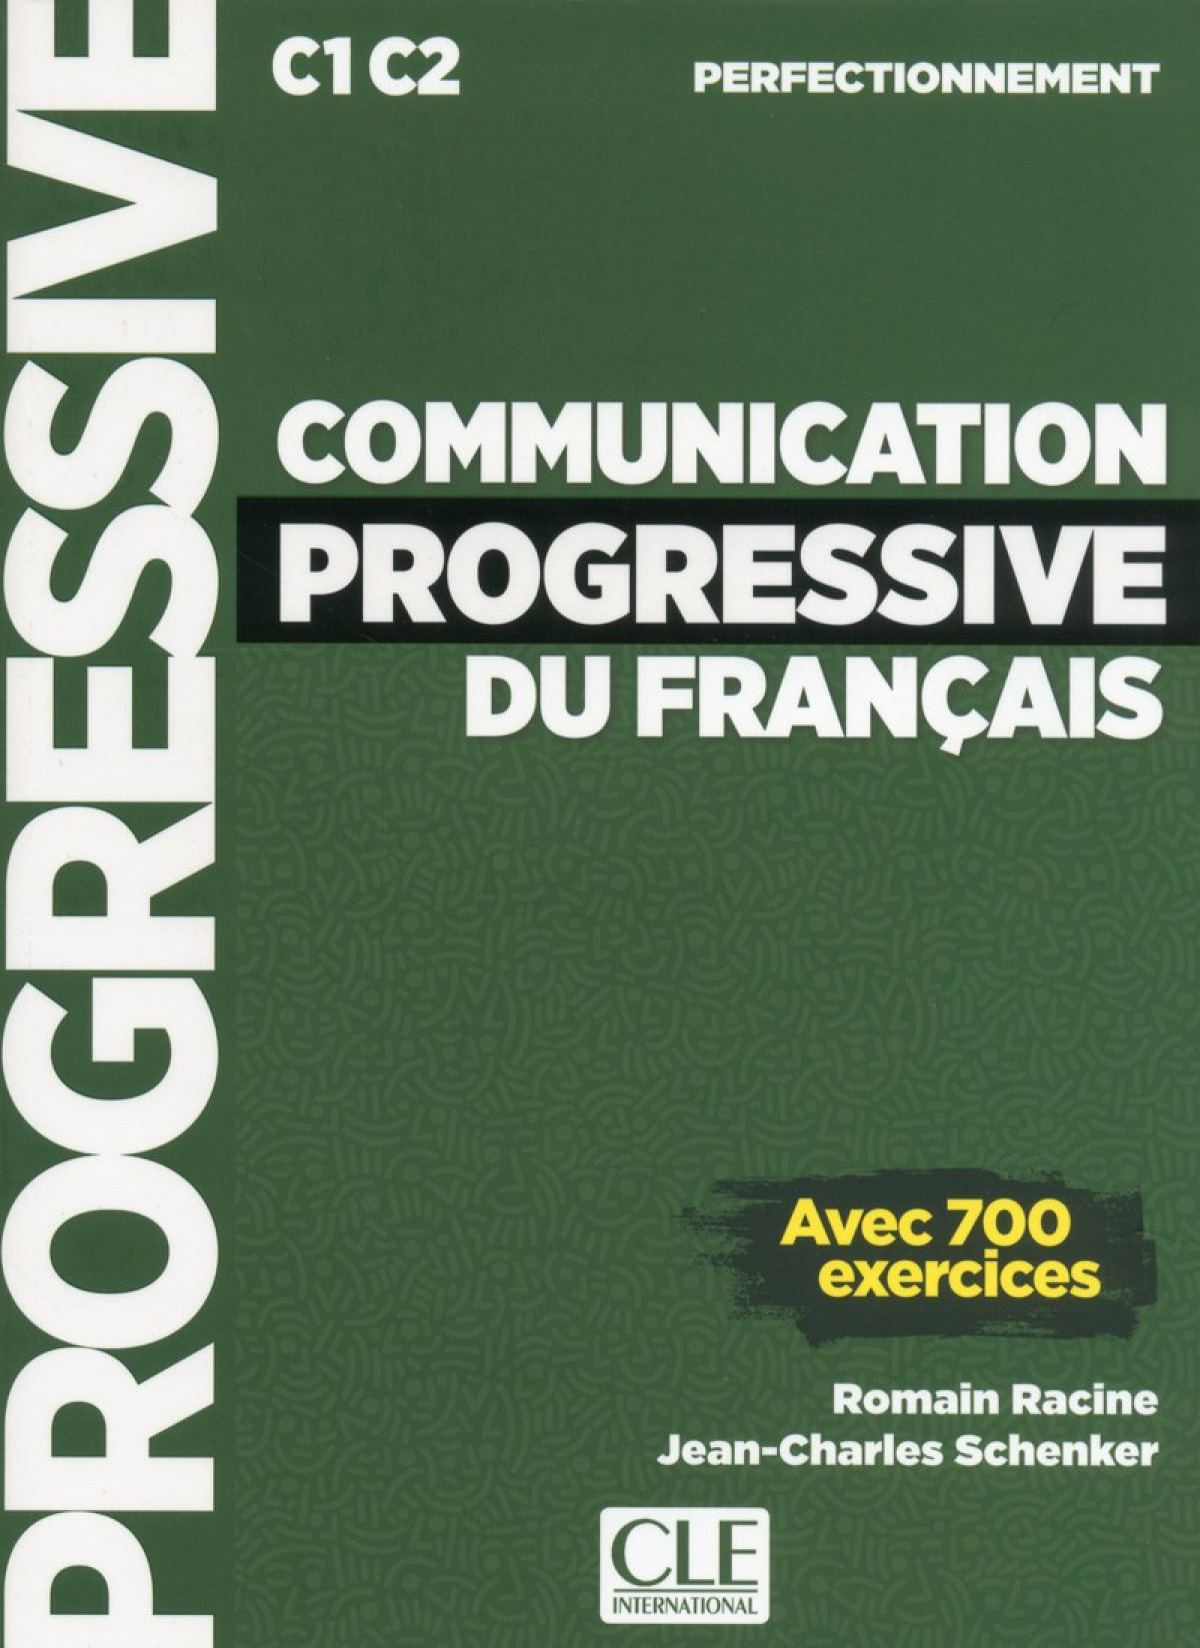 (PERFECT).COMMUNICATION PROGRESSIVE FRANCAIS, 700 EXERCICES